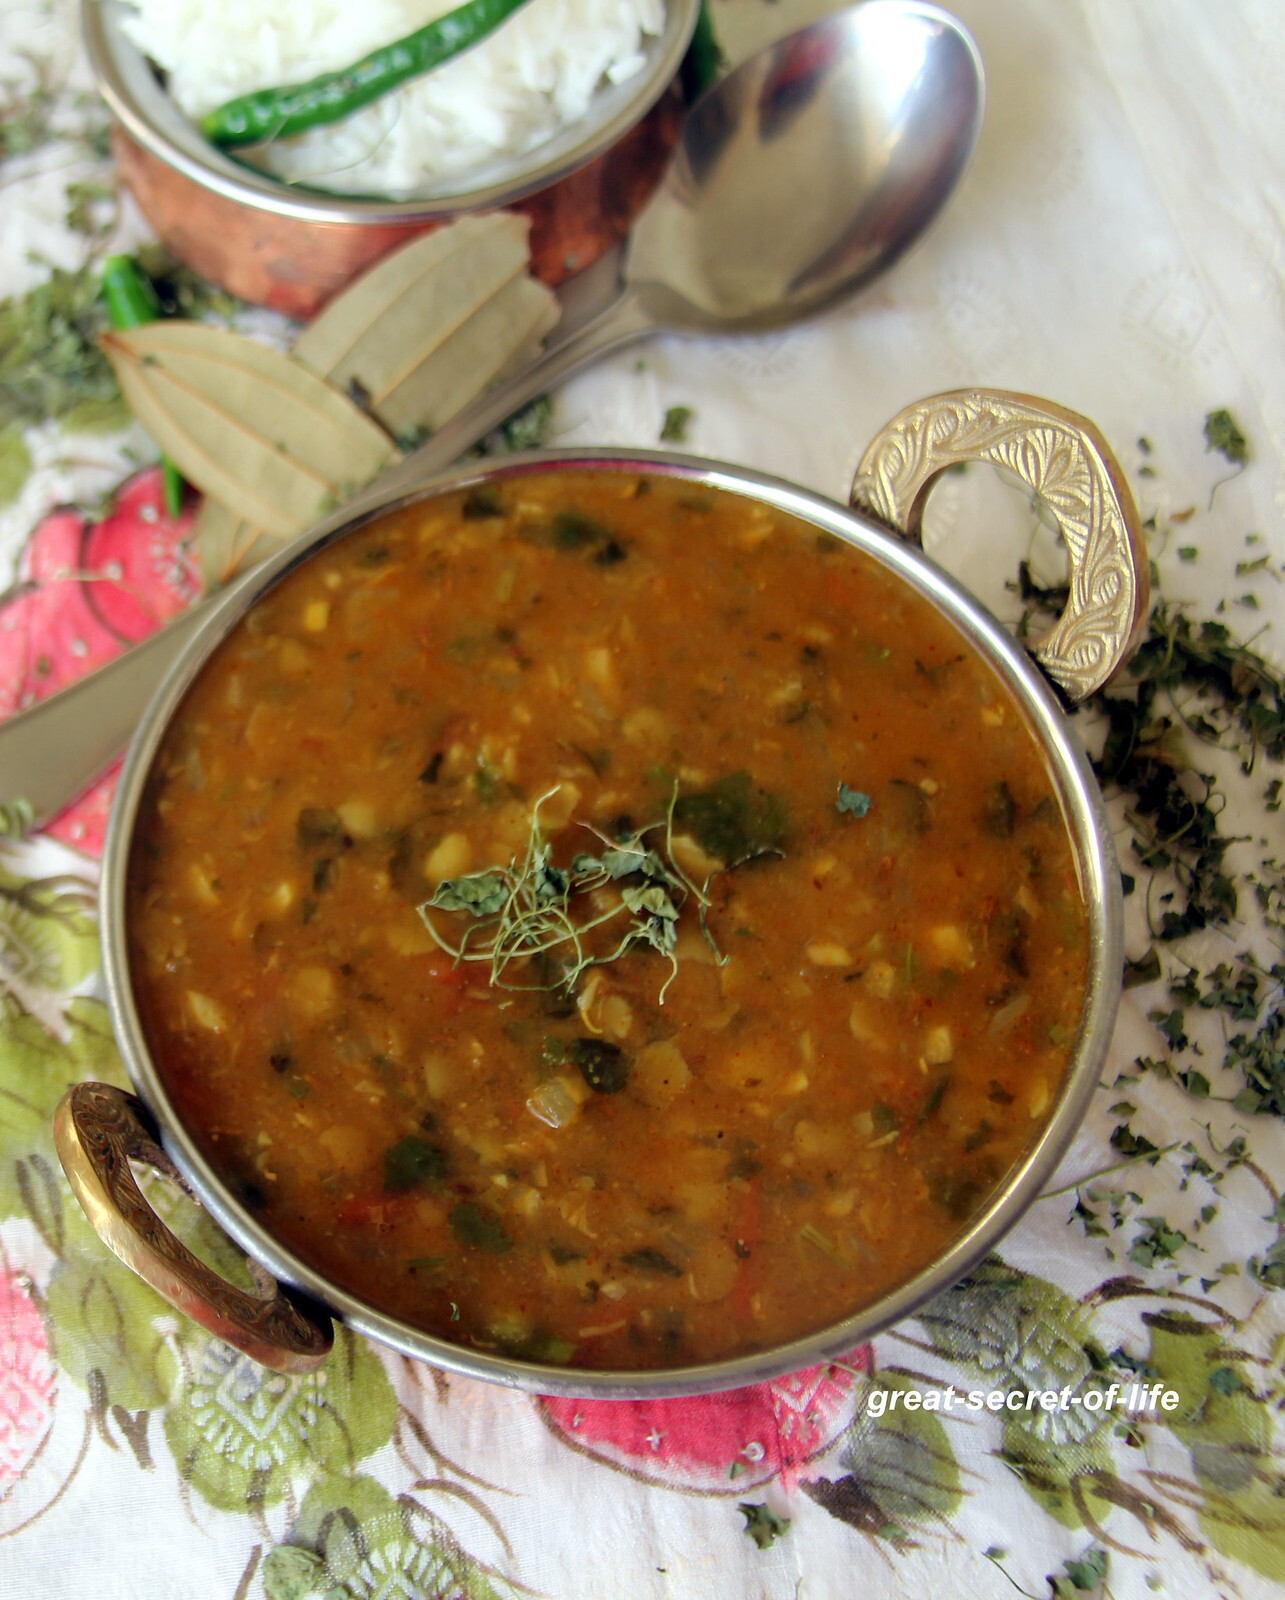 Arhar Dal Fry - punjabi arhar dal fry recipe - Simple dhal fry recipe